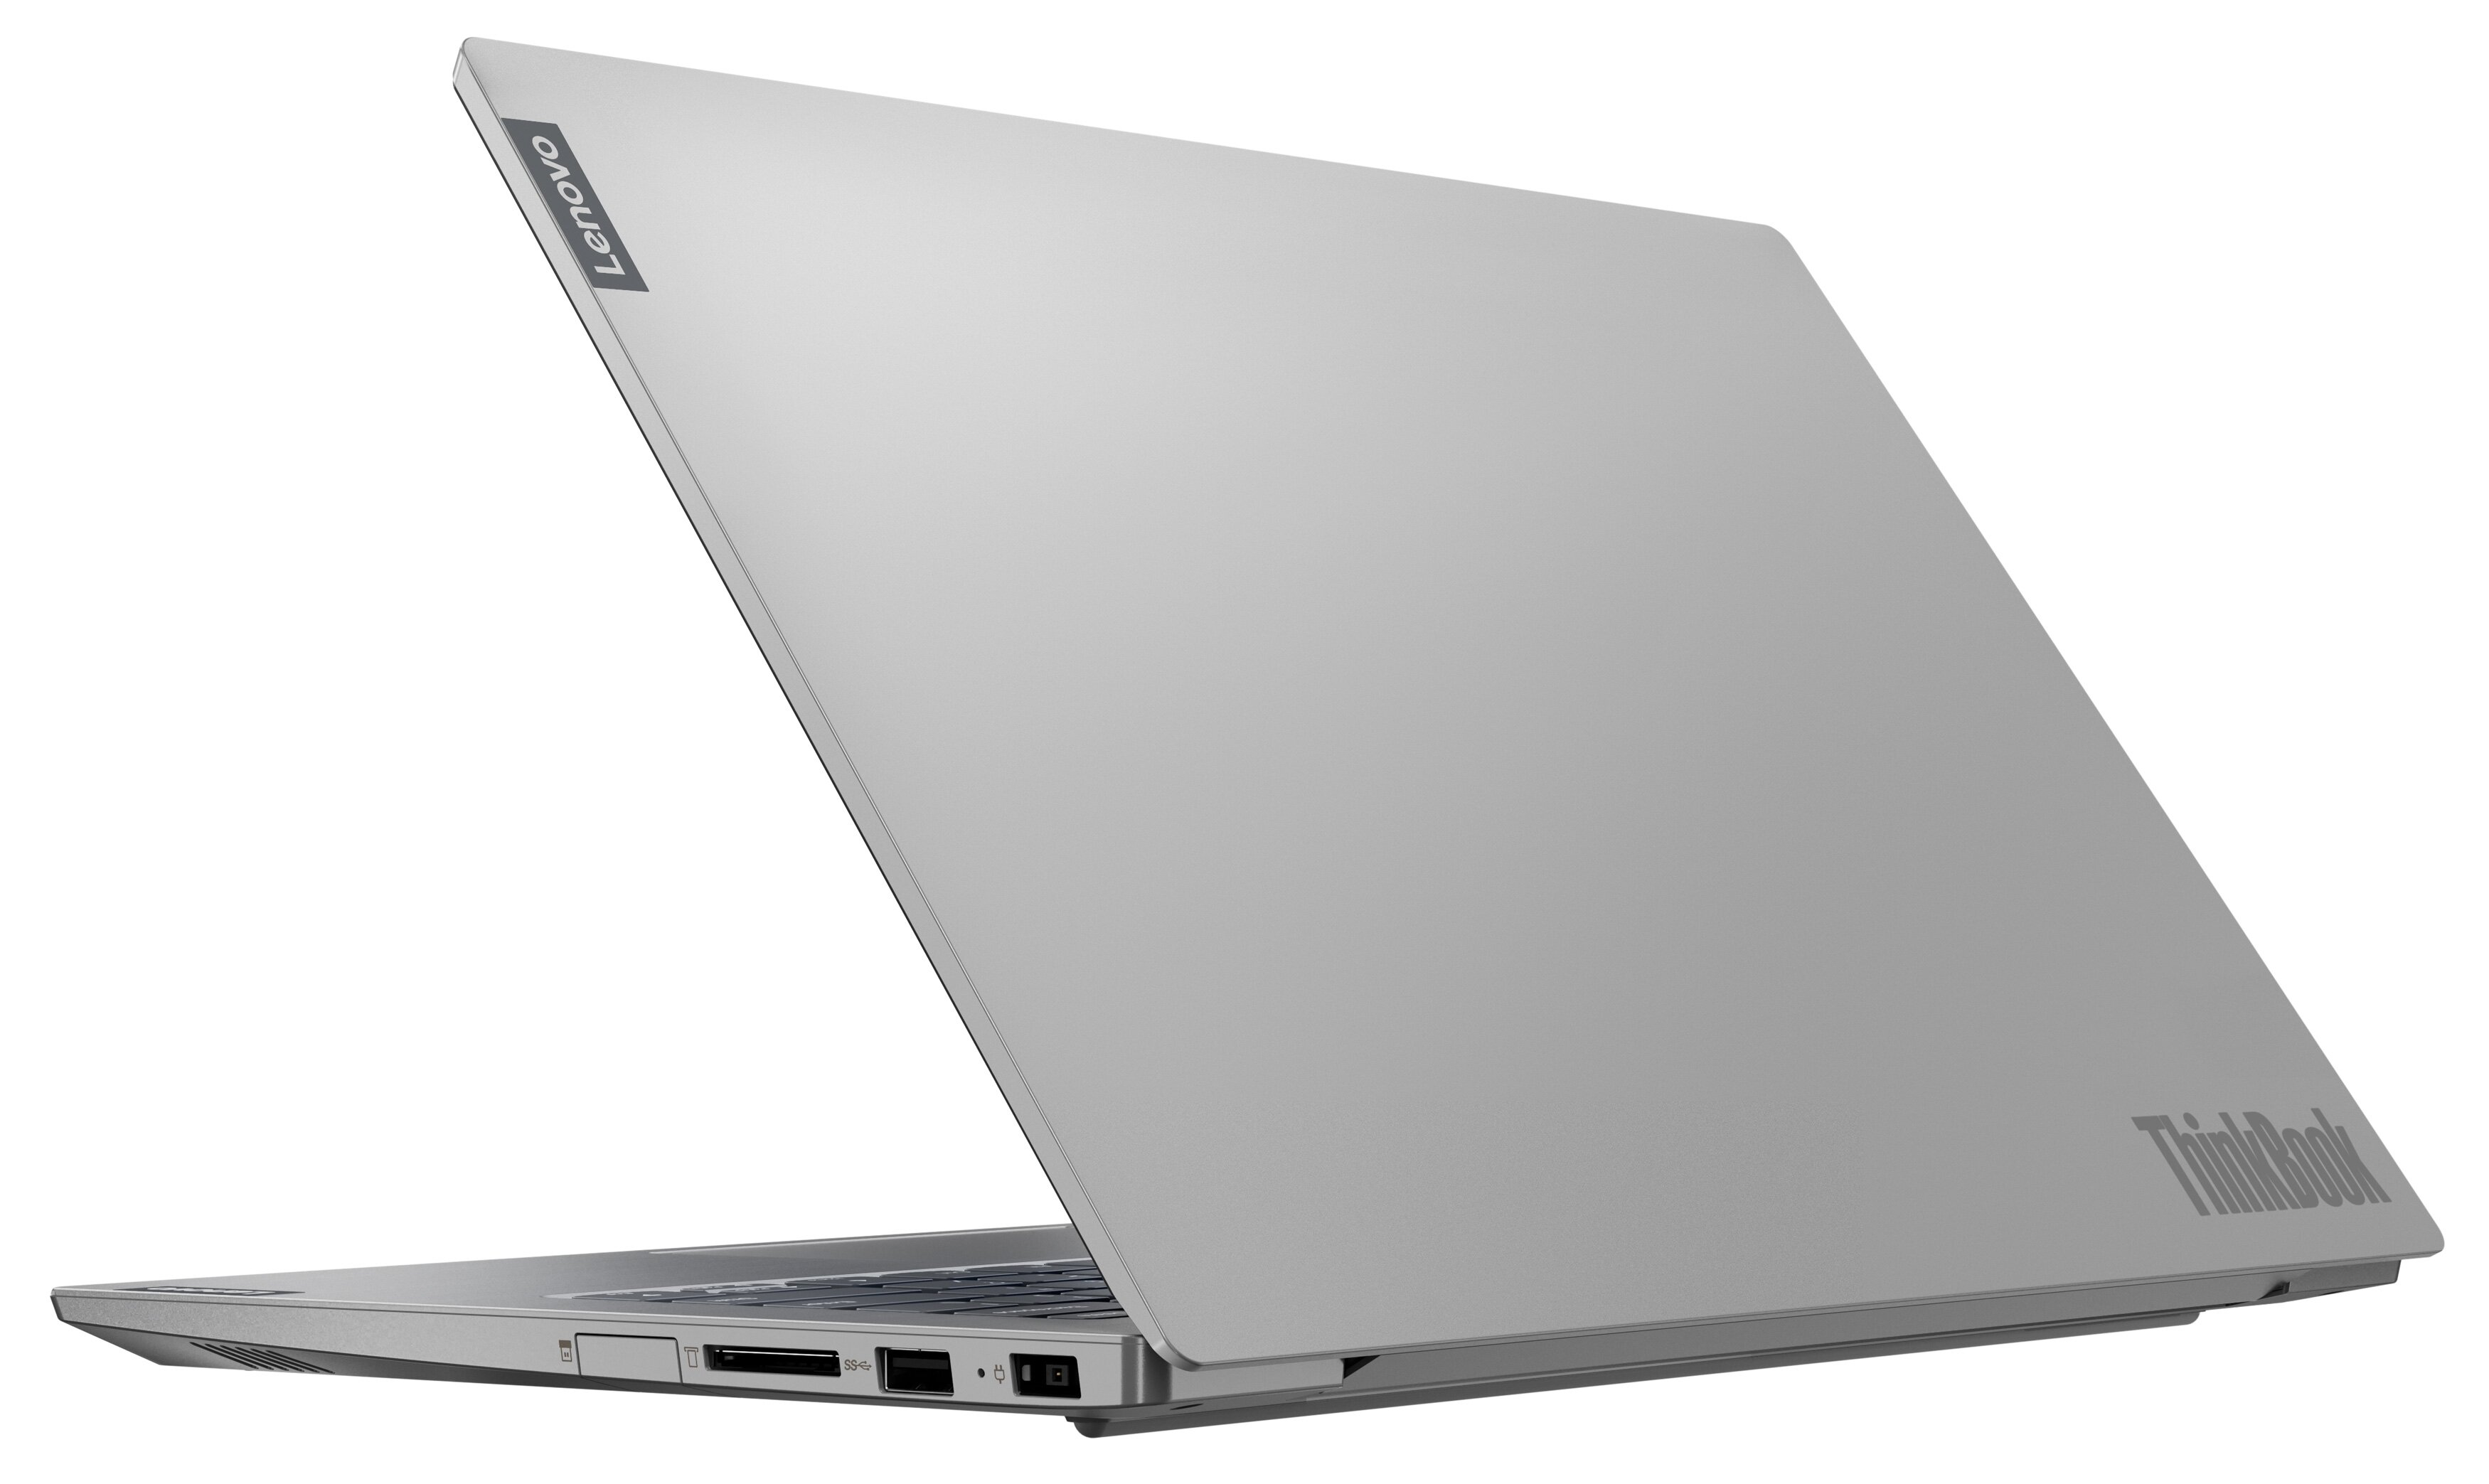 Lenovo ThinkBook 14 14FHD IPS AG/Intel i7-10510U/16/1000+512F/R625-2/W10P/Grey